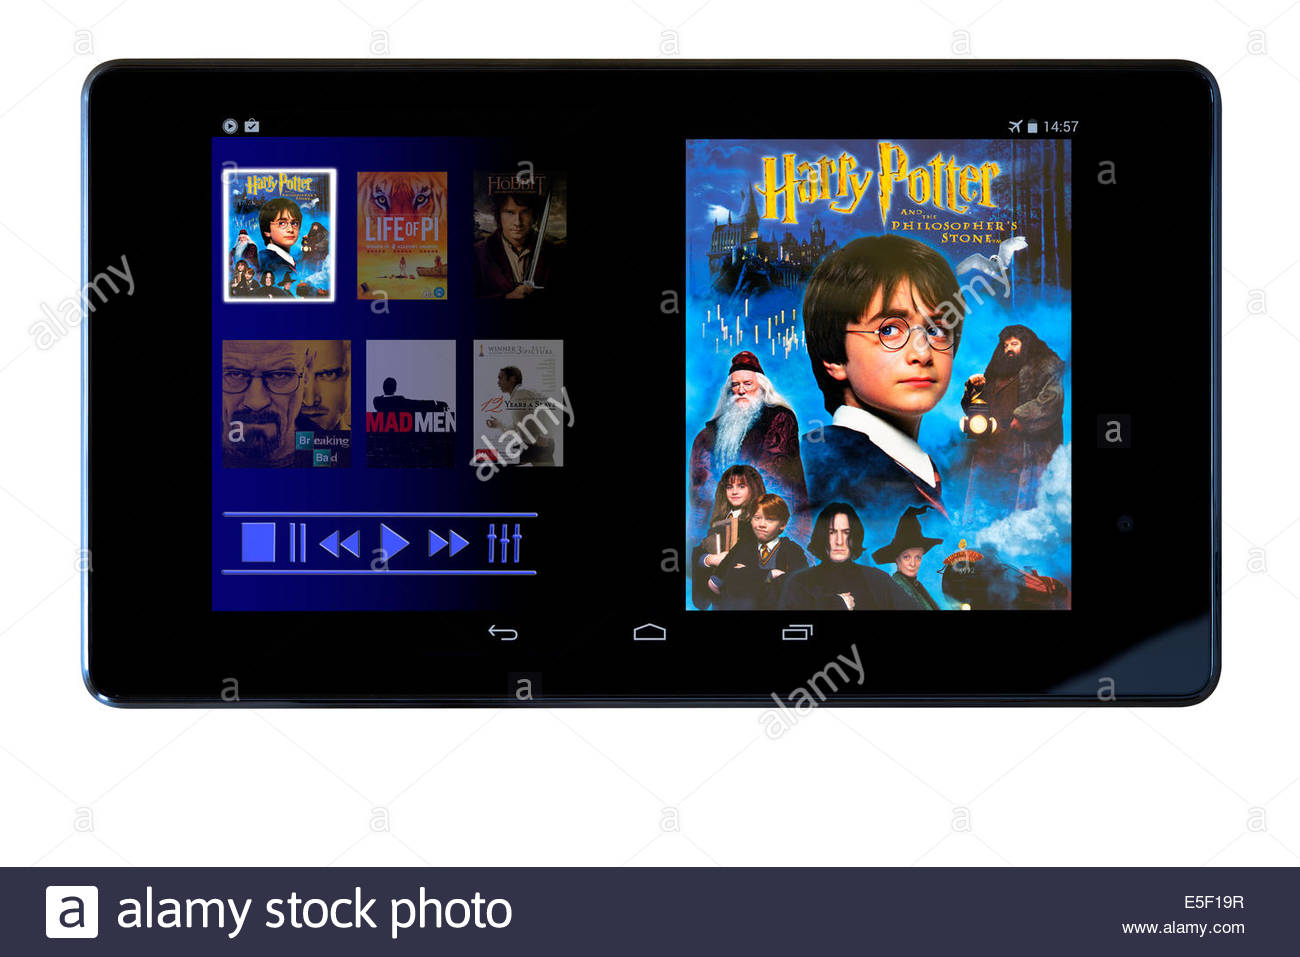 harry potter and the philosophers stone download hd